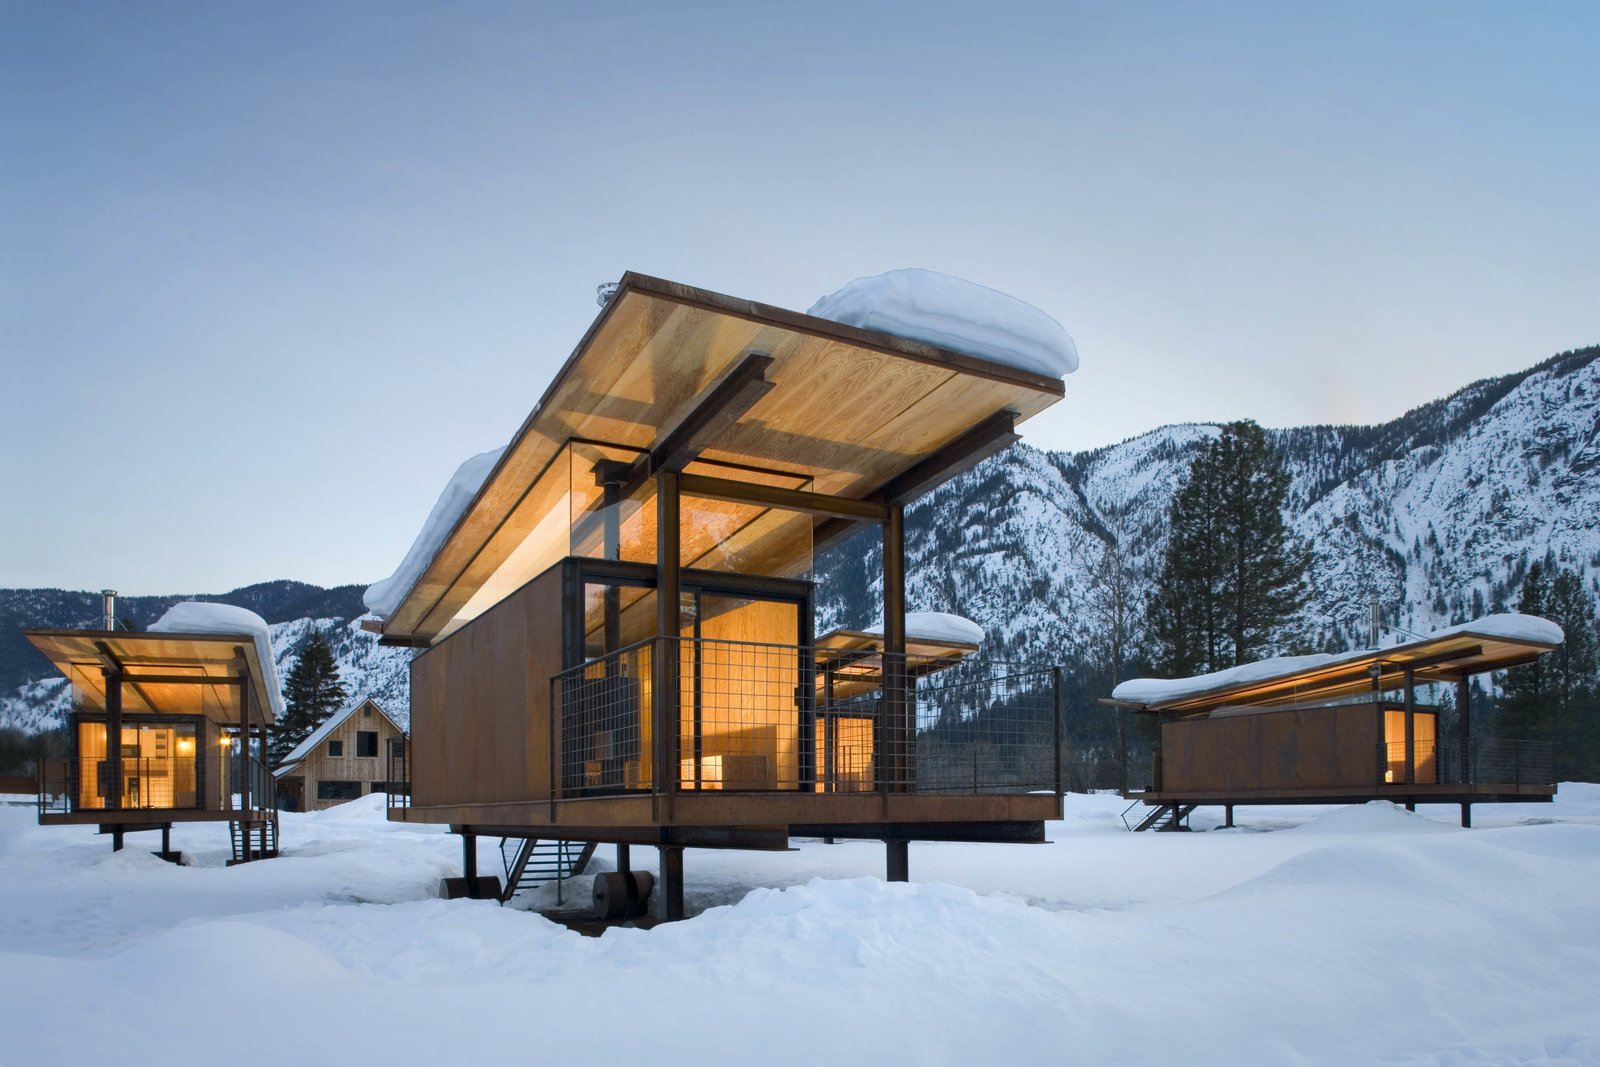 Exterior and Cabin Building Type Olson Kundig designed the Rolling Huts in Mazama, Washington, for a client who needed space to house visiting friends and family. The huts sit lightly on the site, a former RV campground in an alpine river valley. The huts are sited to capture views of the mountains and not one another.  Photo 1 of 7 in In Omaha, an Exhibit Celebrates 50 Years of Olson Kundig